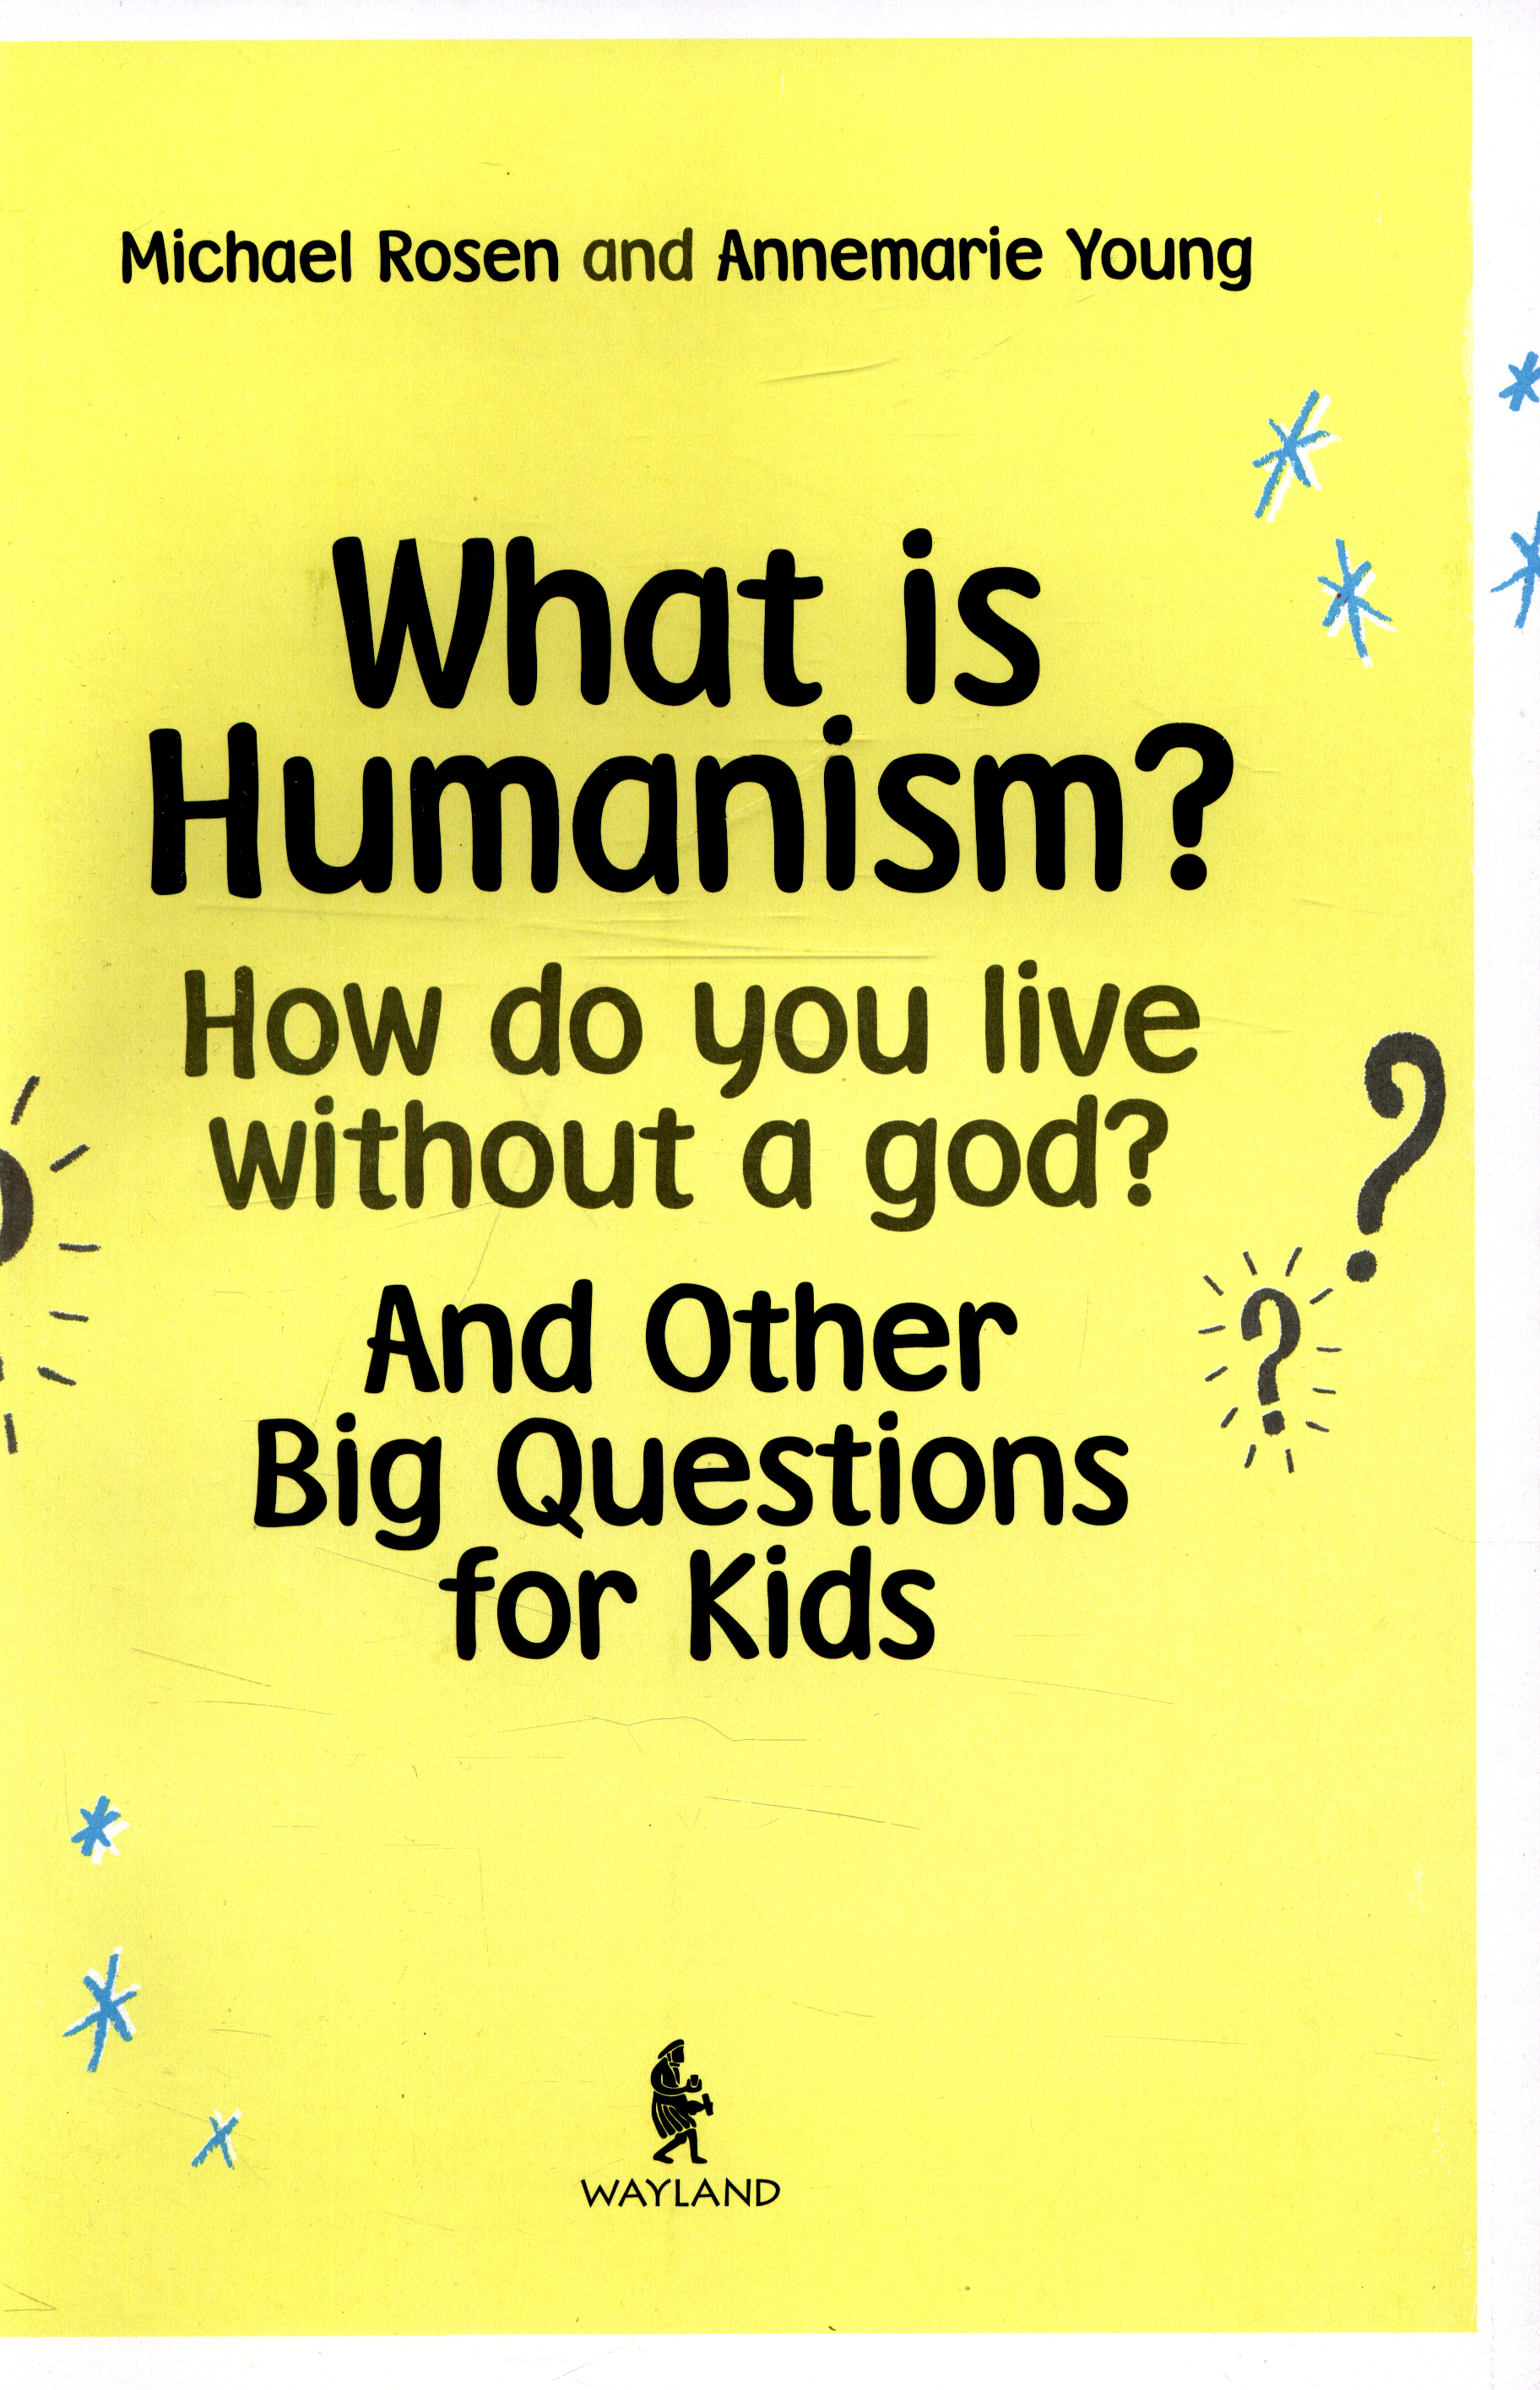 humanism questions Start studying renaissance humanism learn vocabulary, terms, and more with flashcards, games, and other study tools.